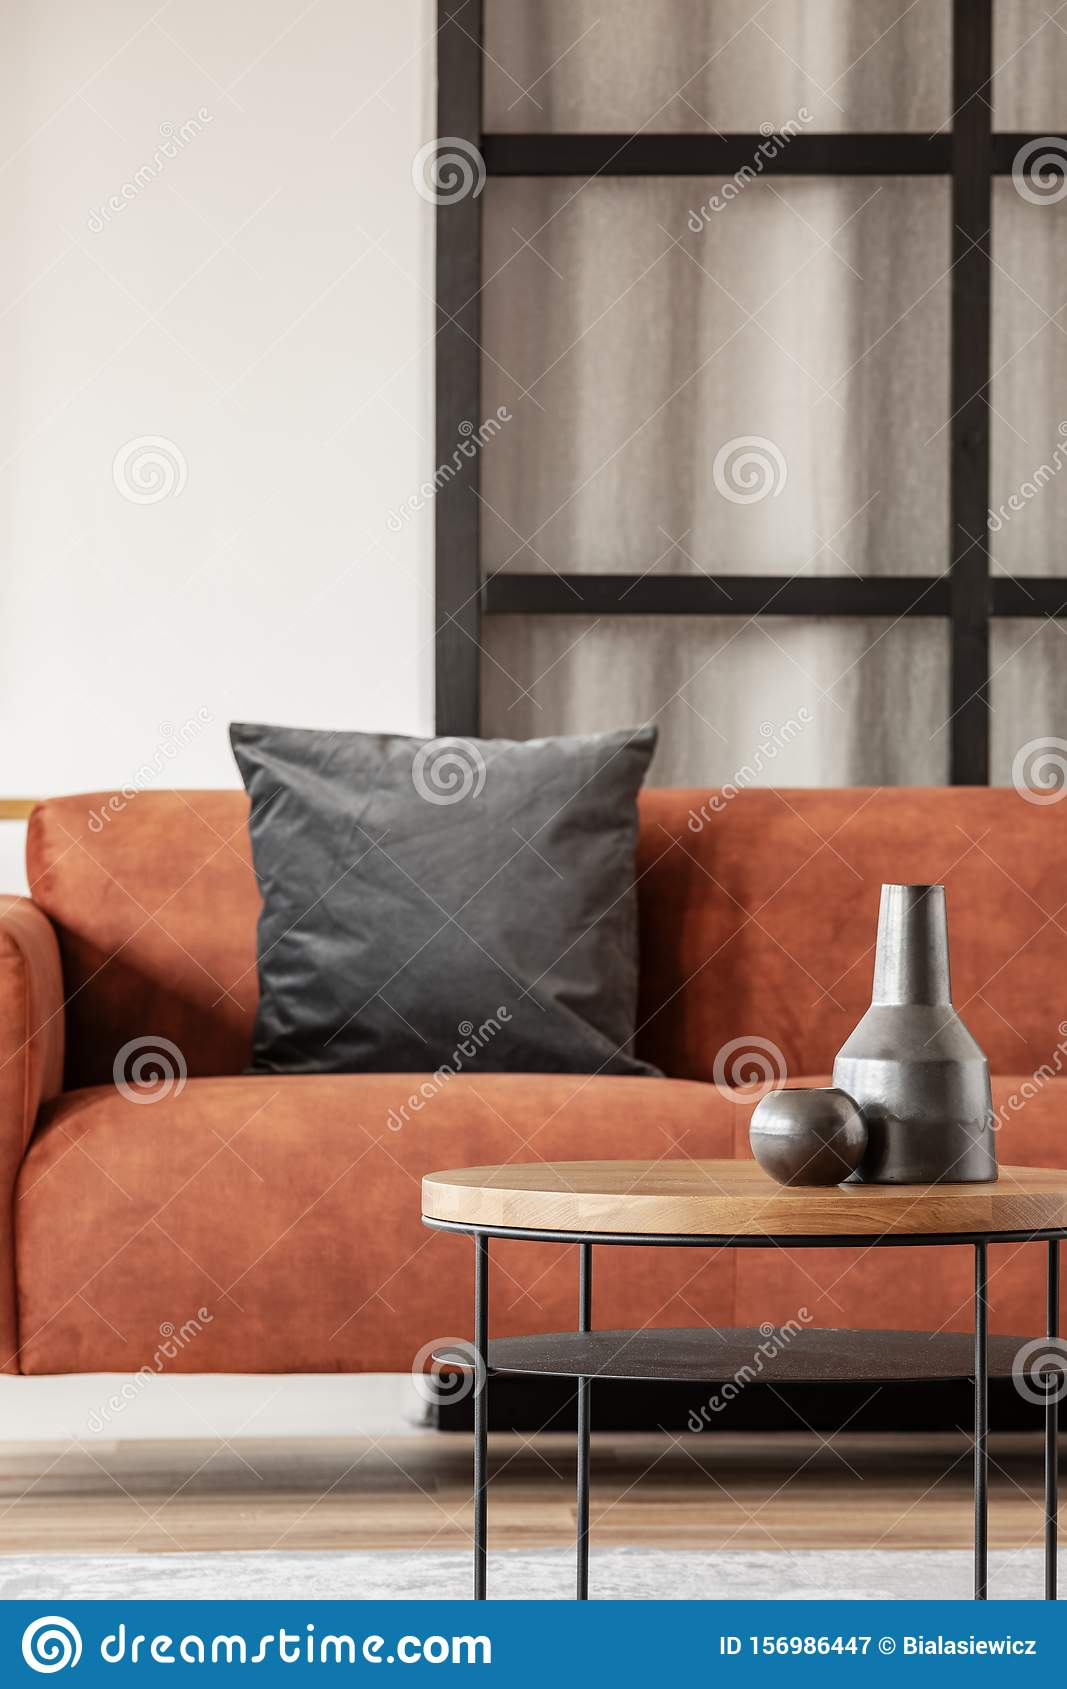 Black Vase On Wooden Coffee Table In Chic Living Room